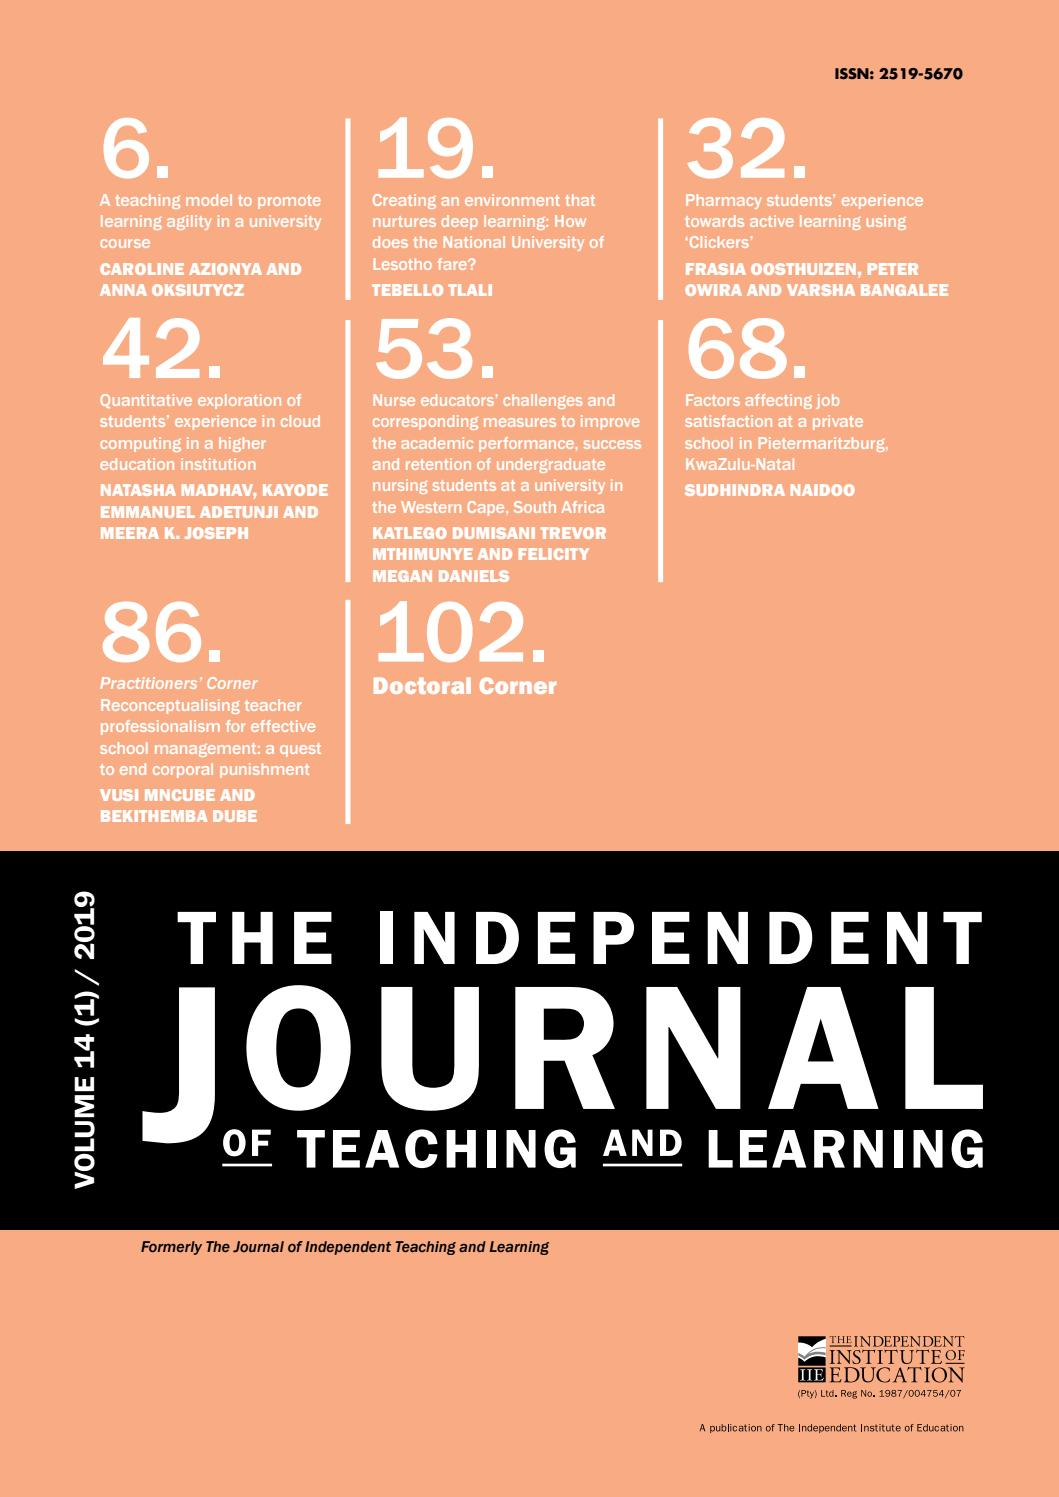 The Independent Journal of Teaching and Learning - Vol 14 (1) 2019